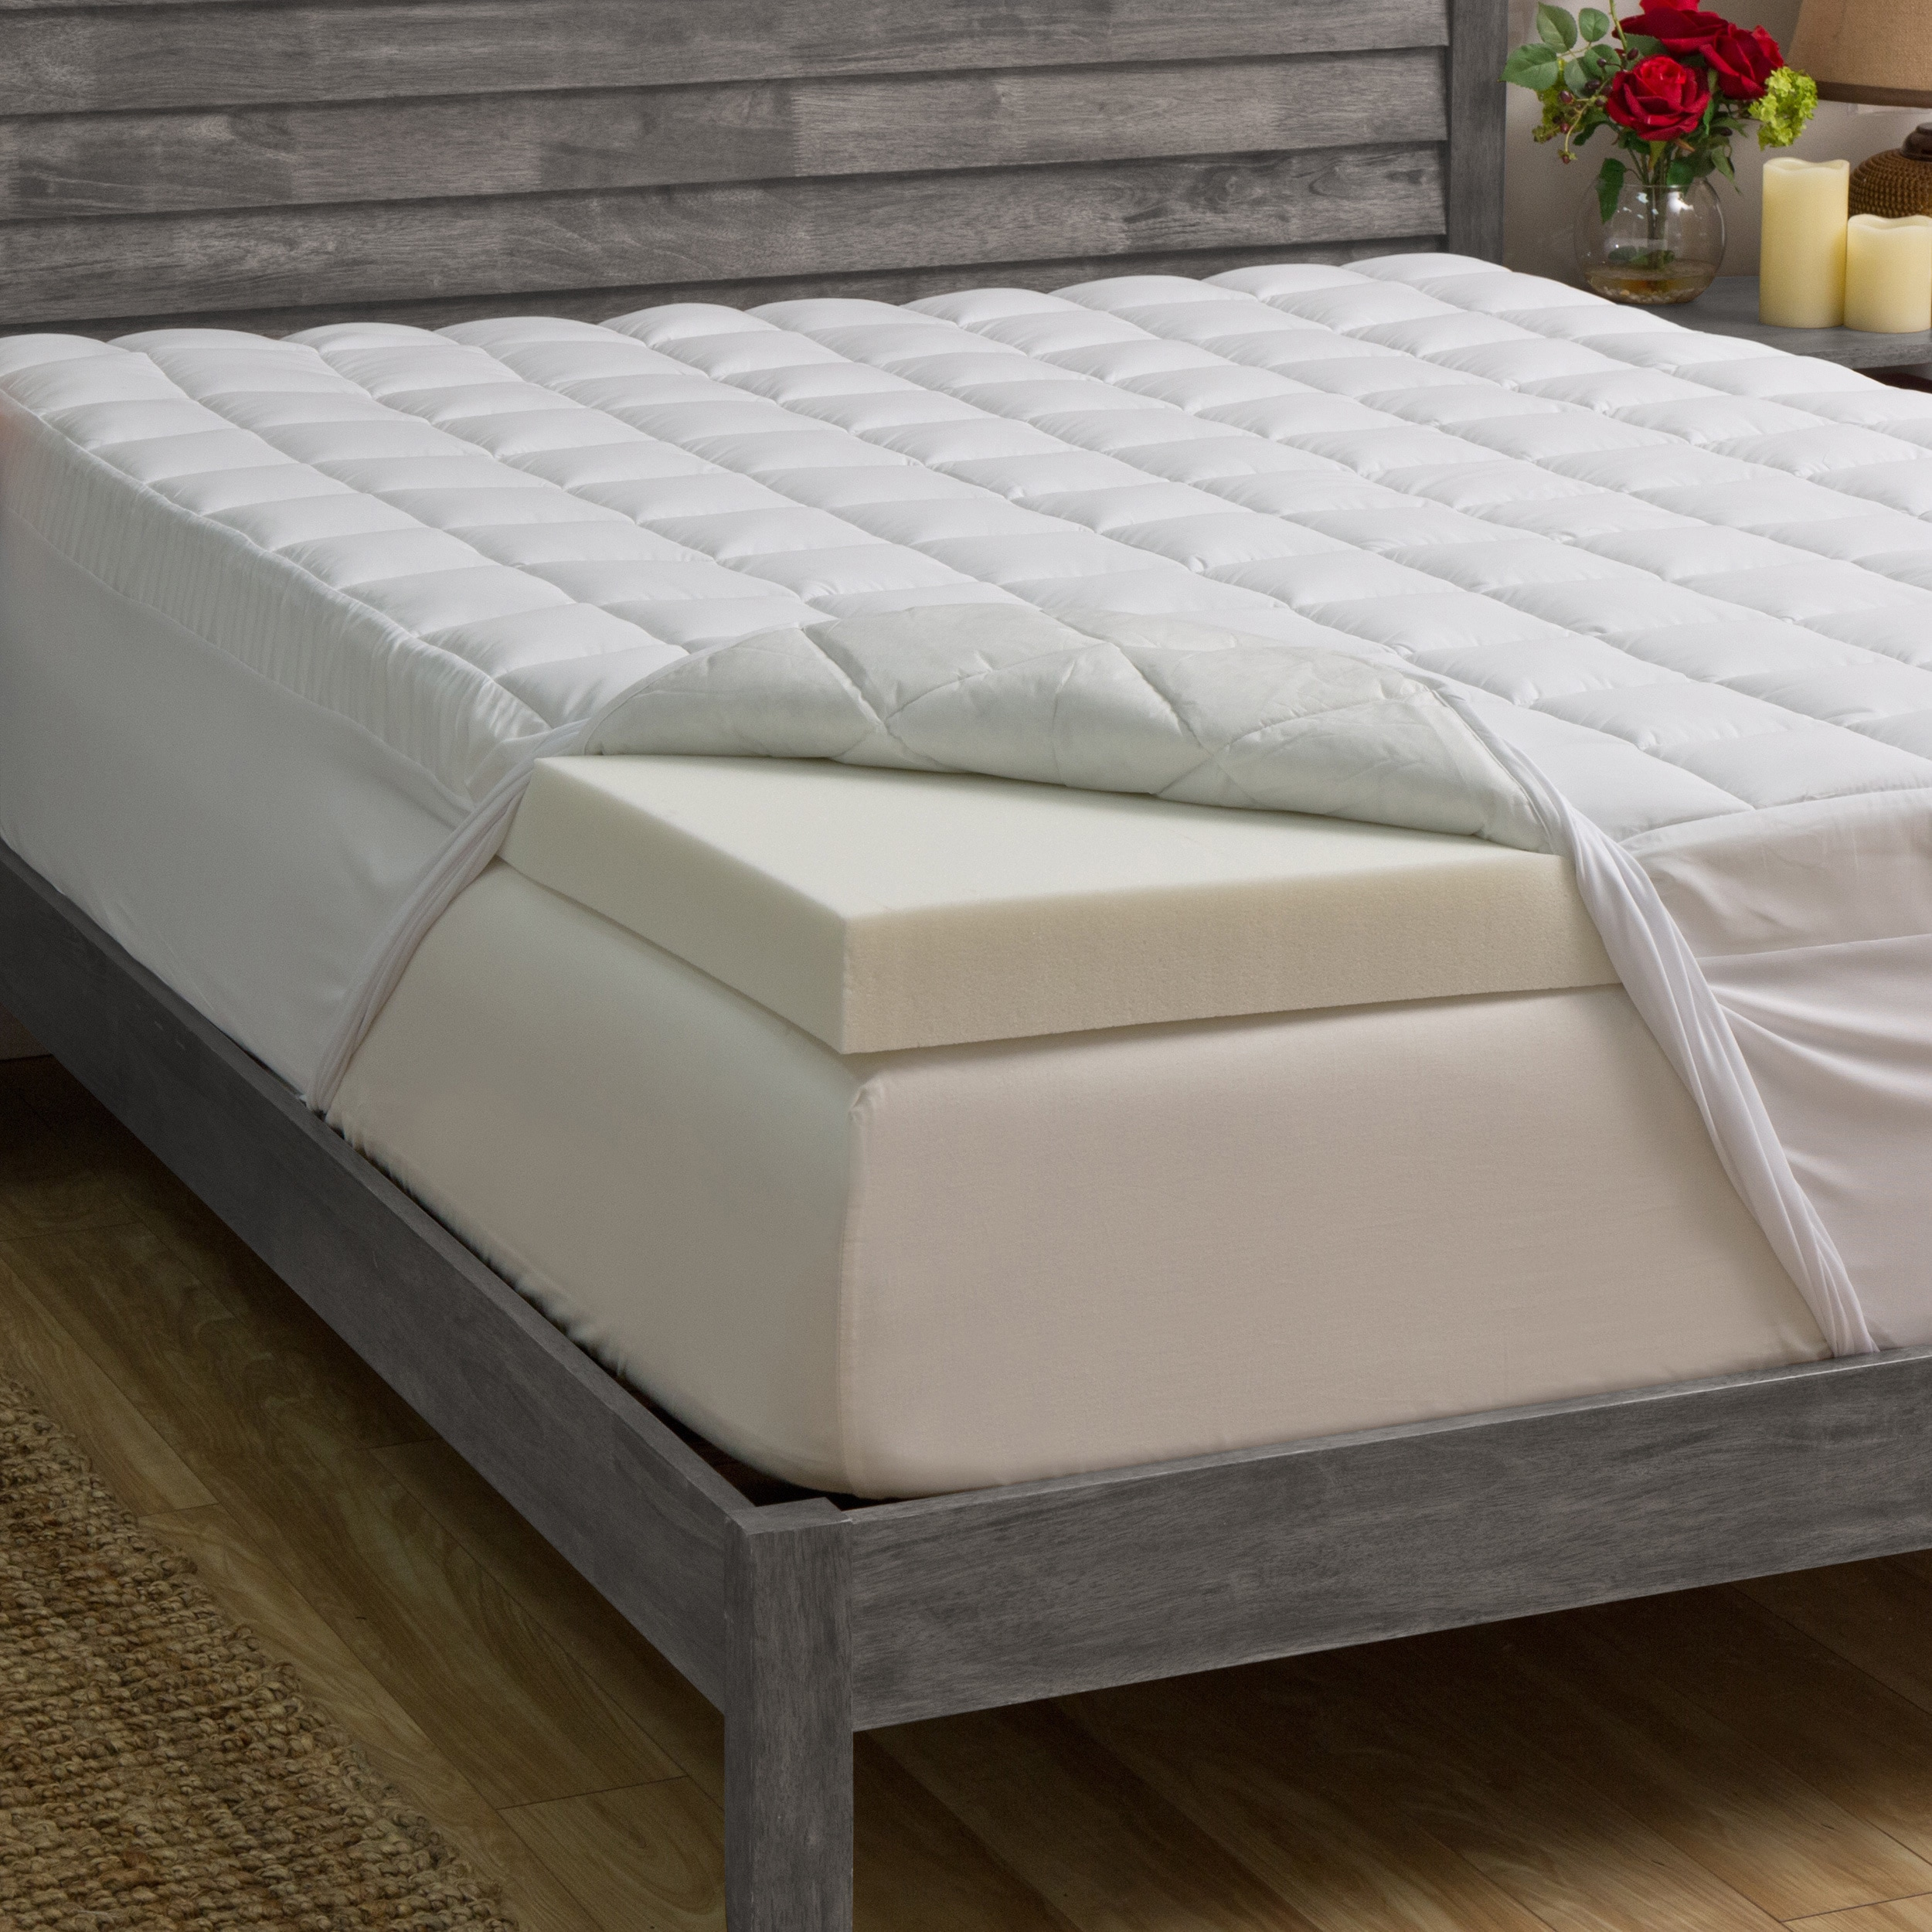 ideas topper pic pict serta mattress and memory touch for king foam inch inspiration astonishing incredible ultimate xfile topmemoryfoammattresstoppers of comfort